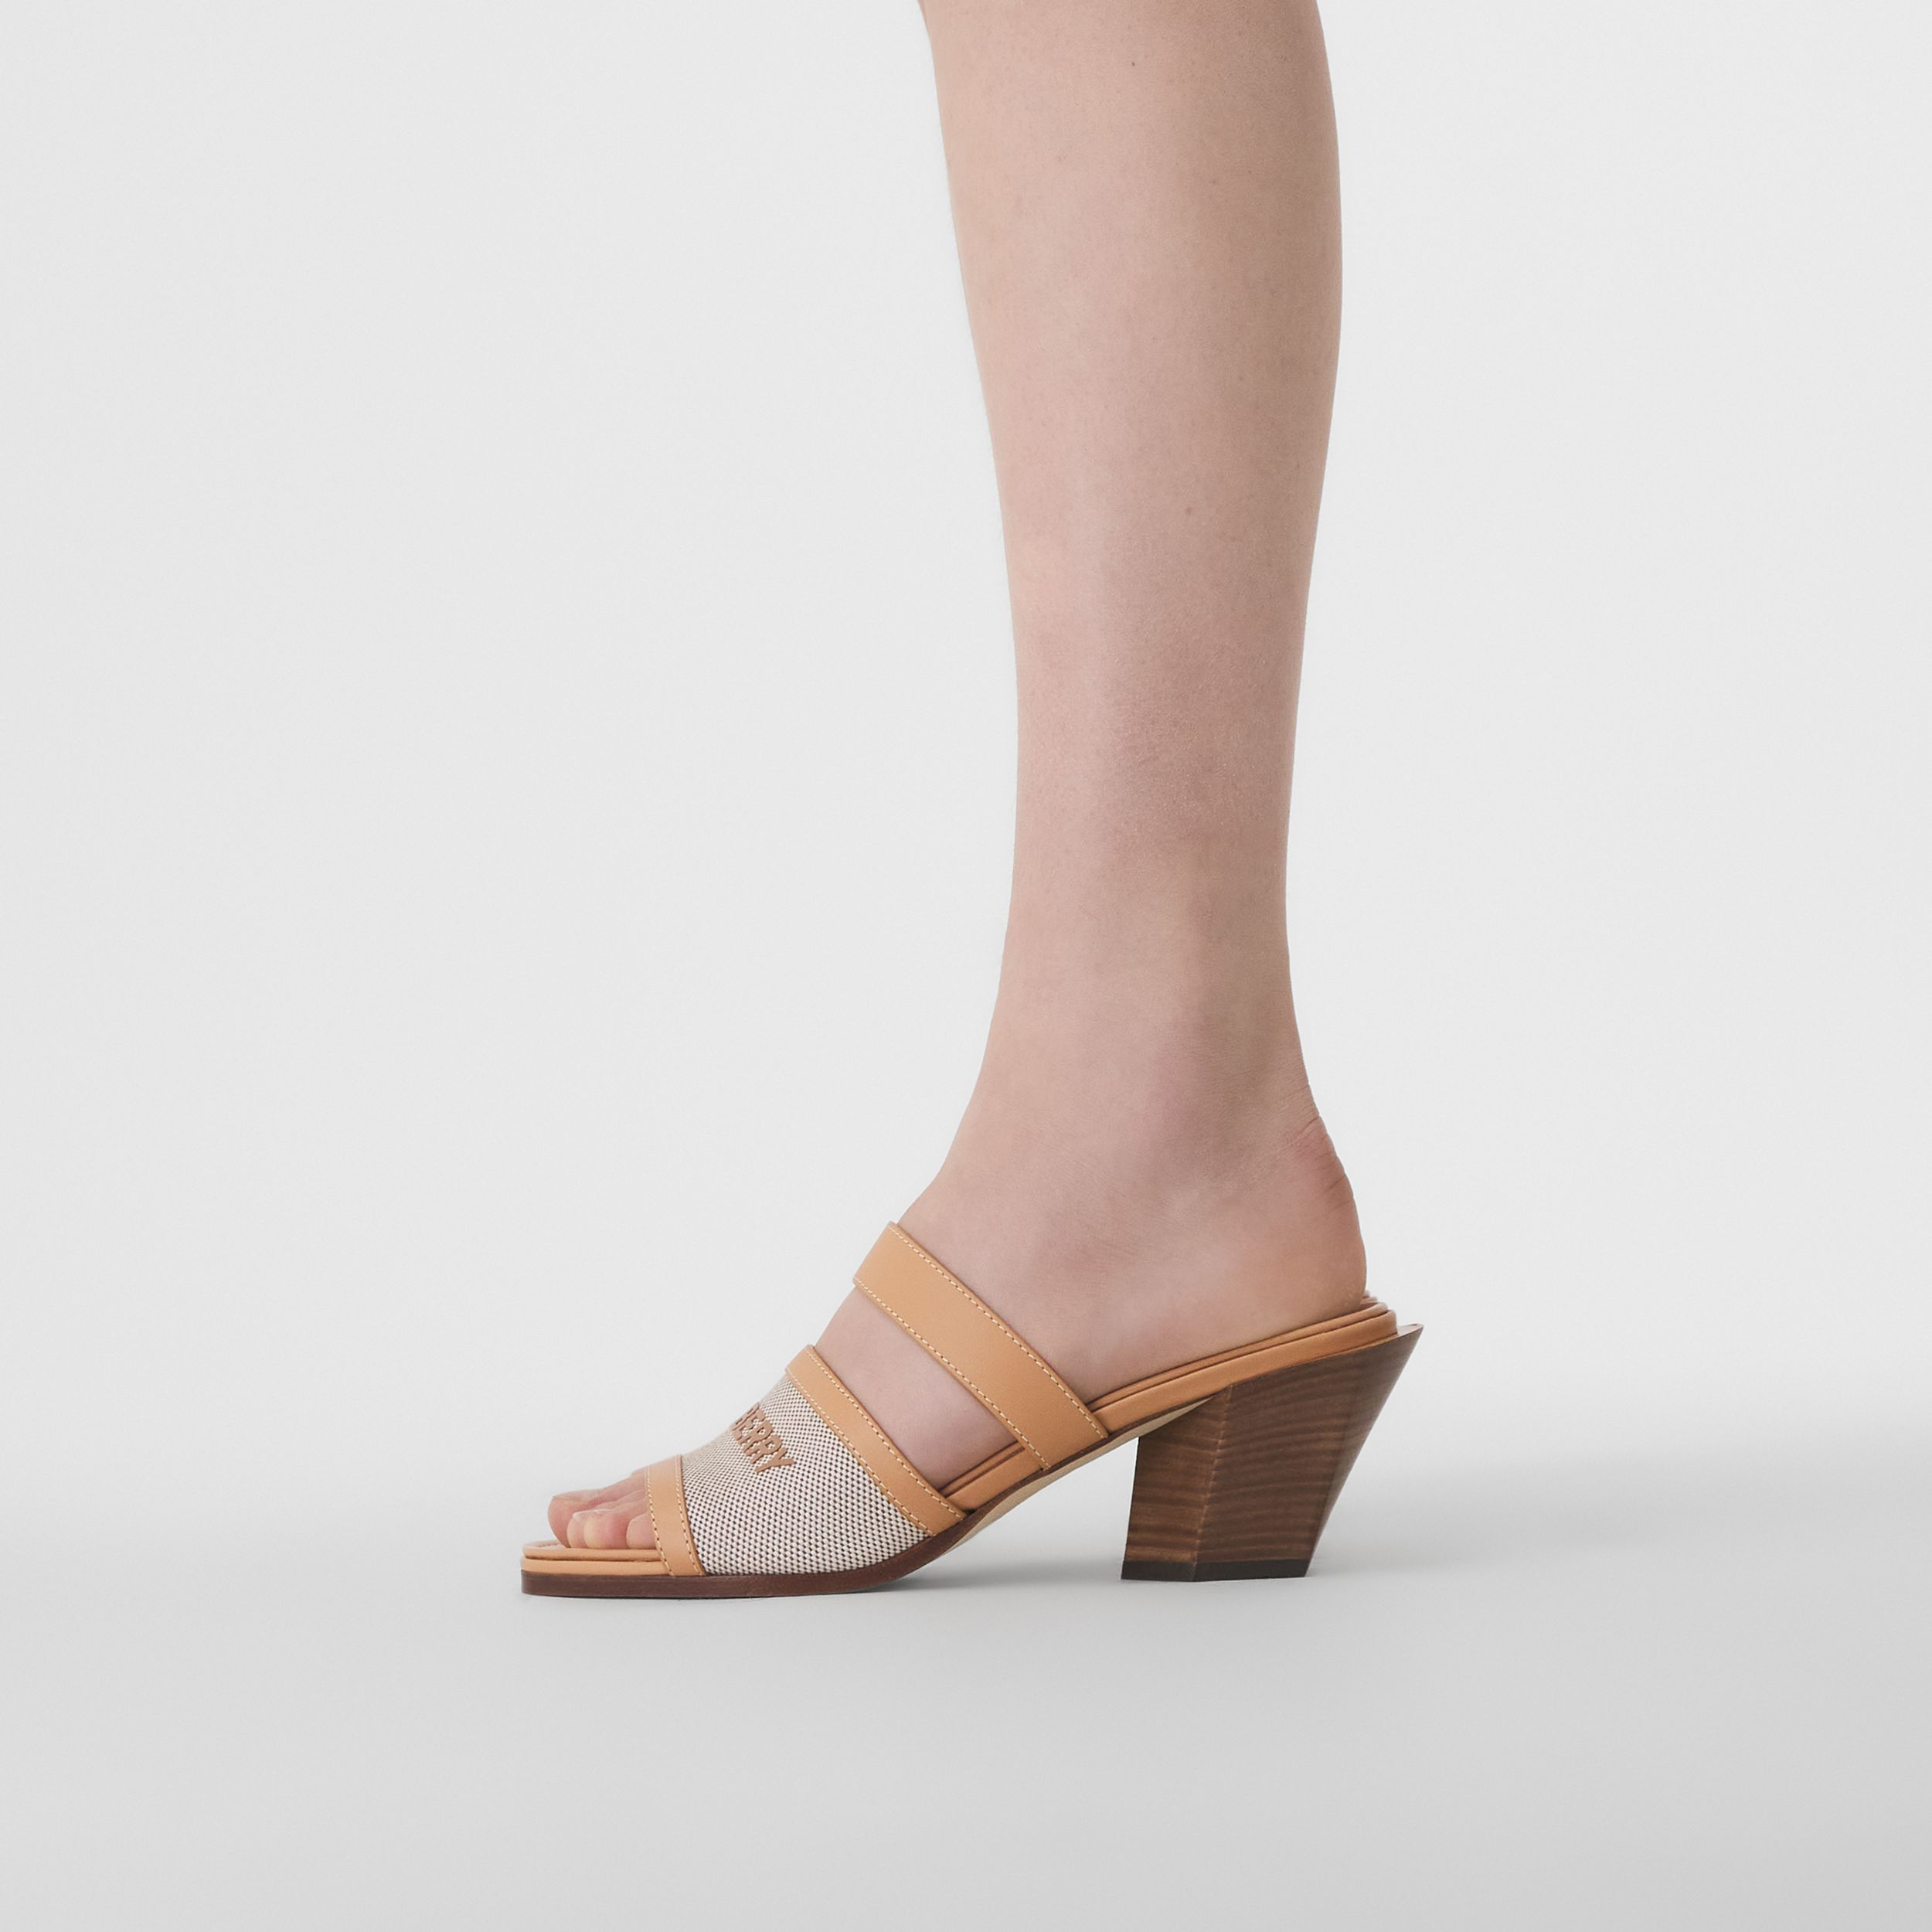 Logo Print Canvas and Leather Mules in Warm Sand/soft Fawn - Women | Burberry - 3